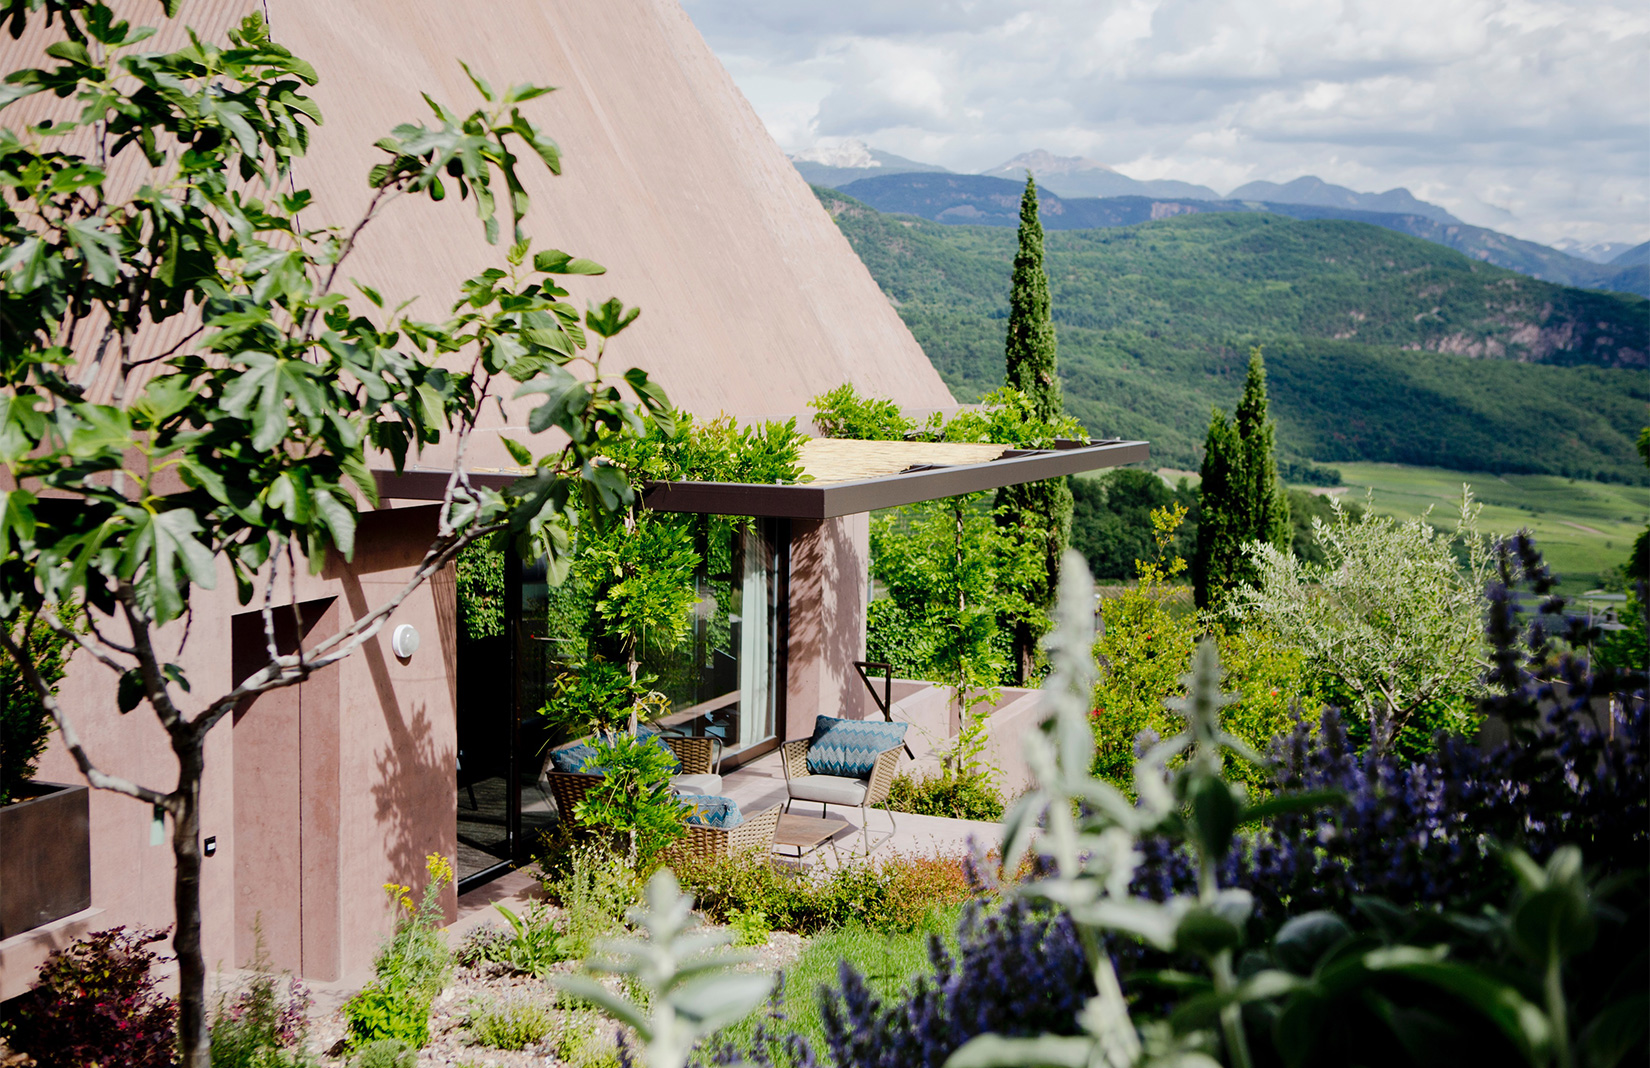 Holiday home of the week: South Tyrol